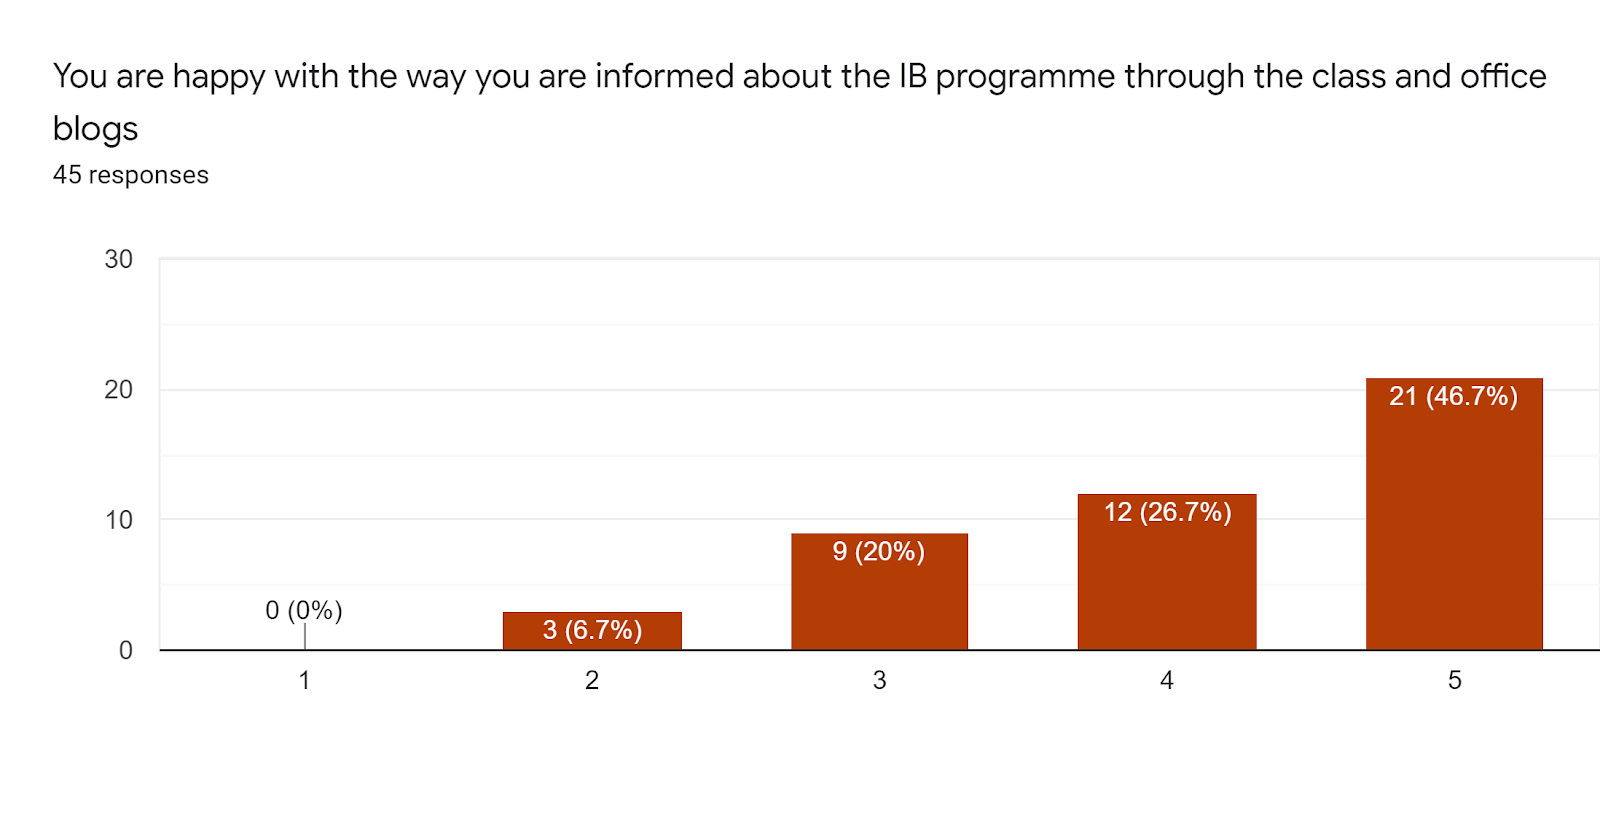 Forms response chart. Question title: You are happy with the way you are informed about the IB programme through the class and office blogs. Number of responses: 45 responses.